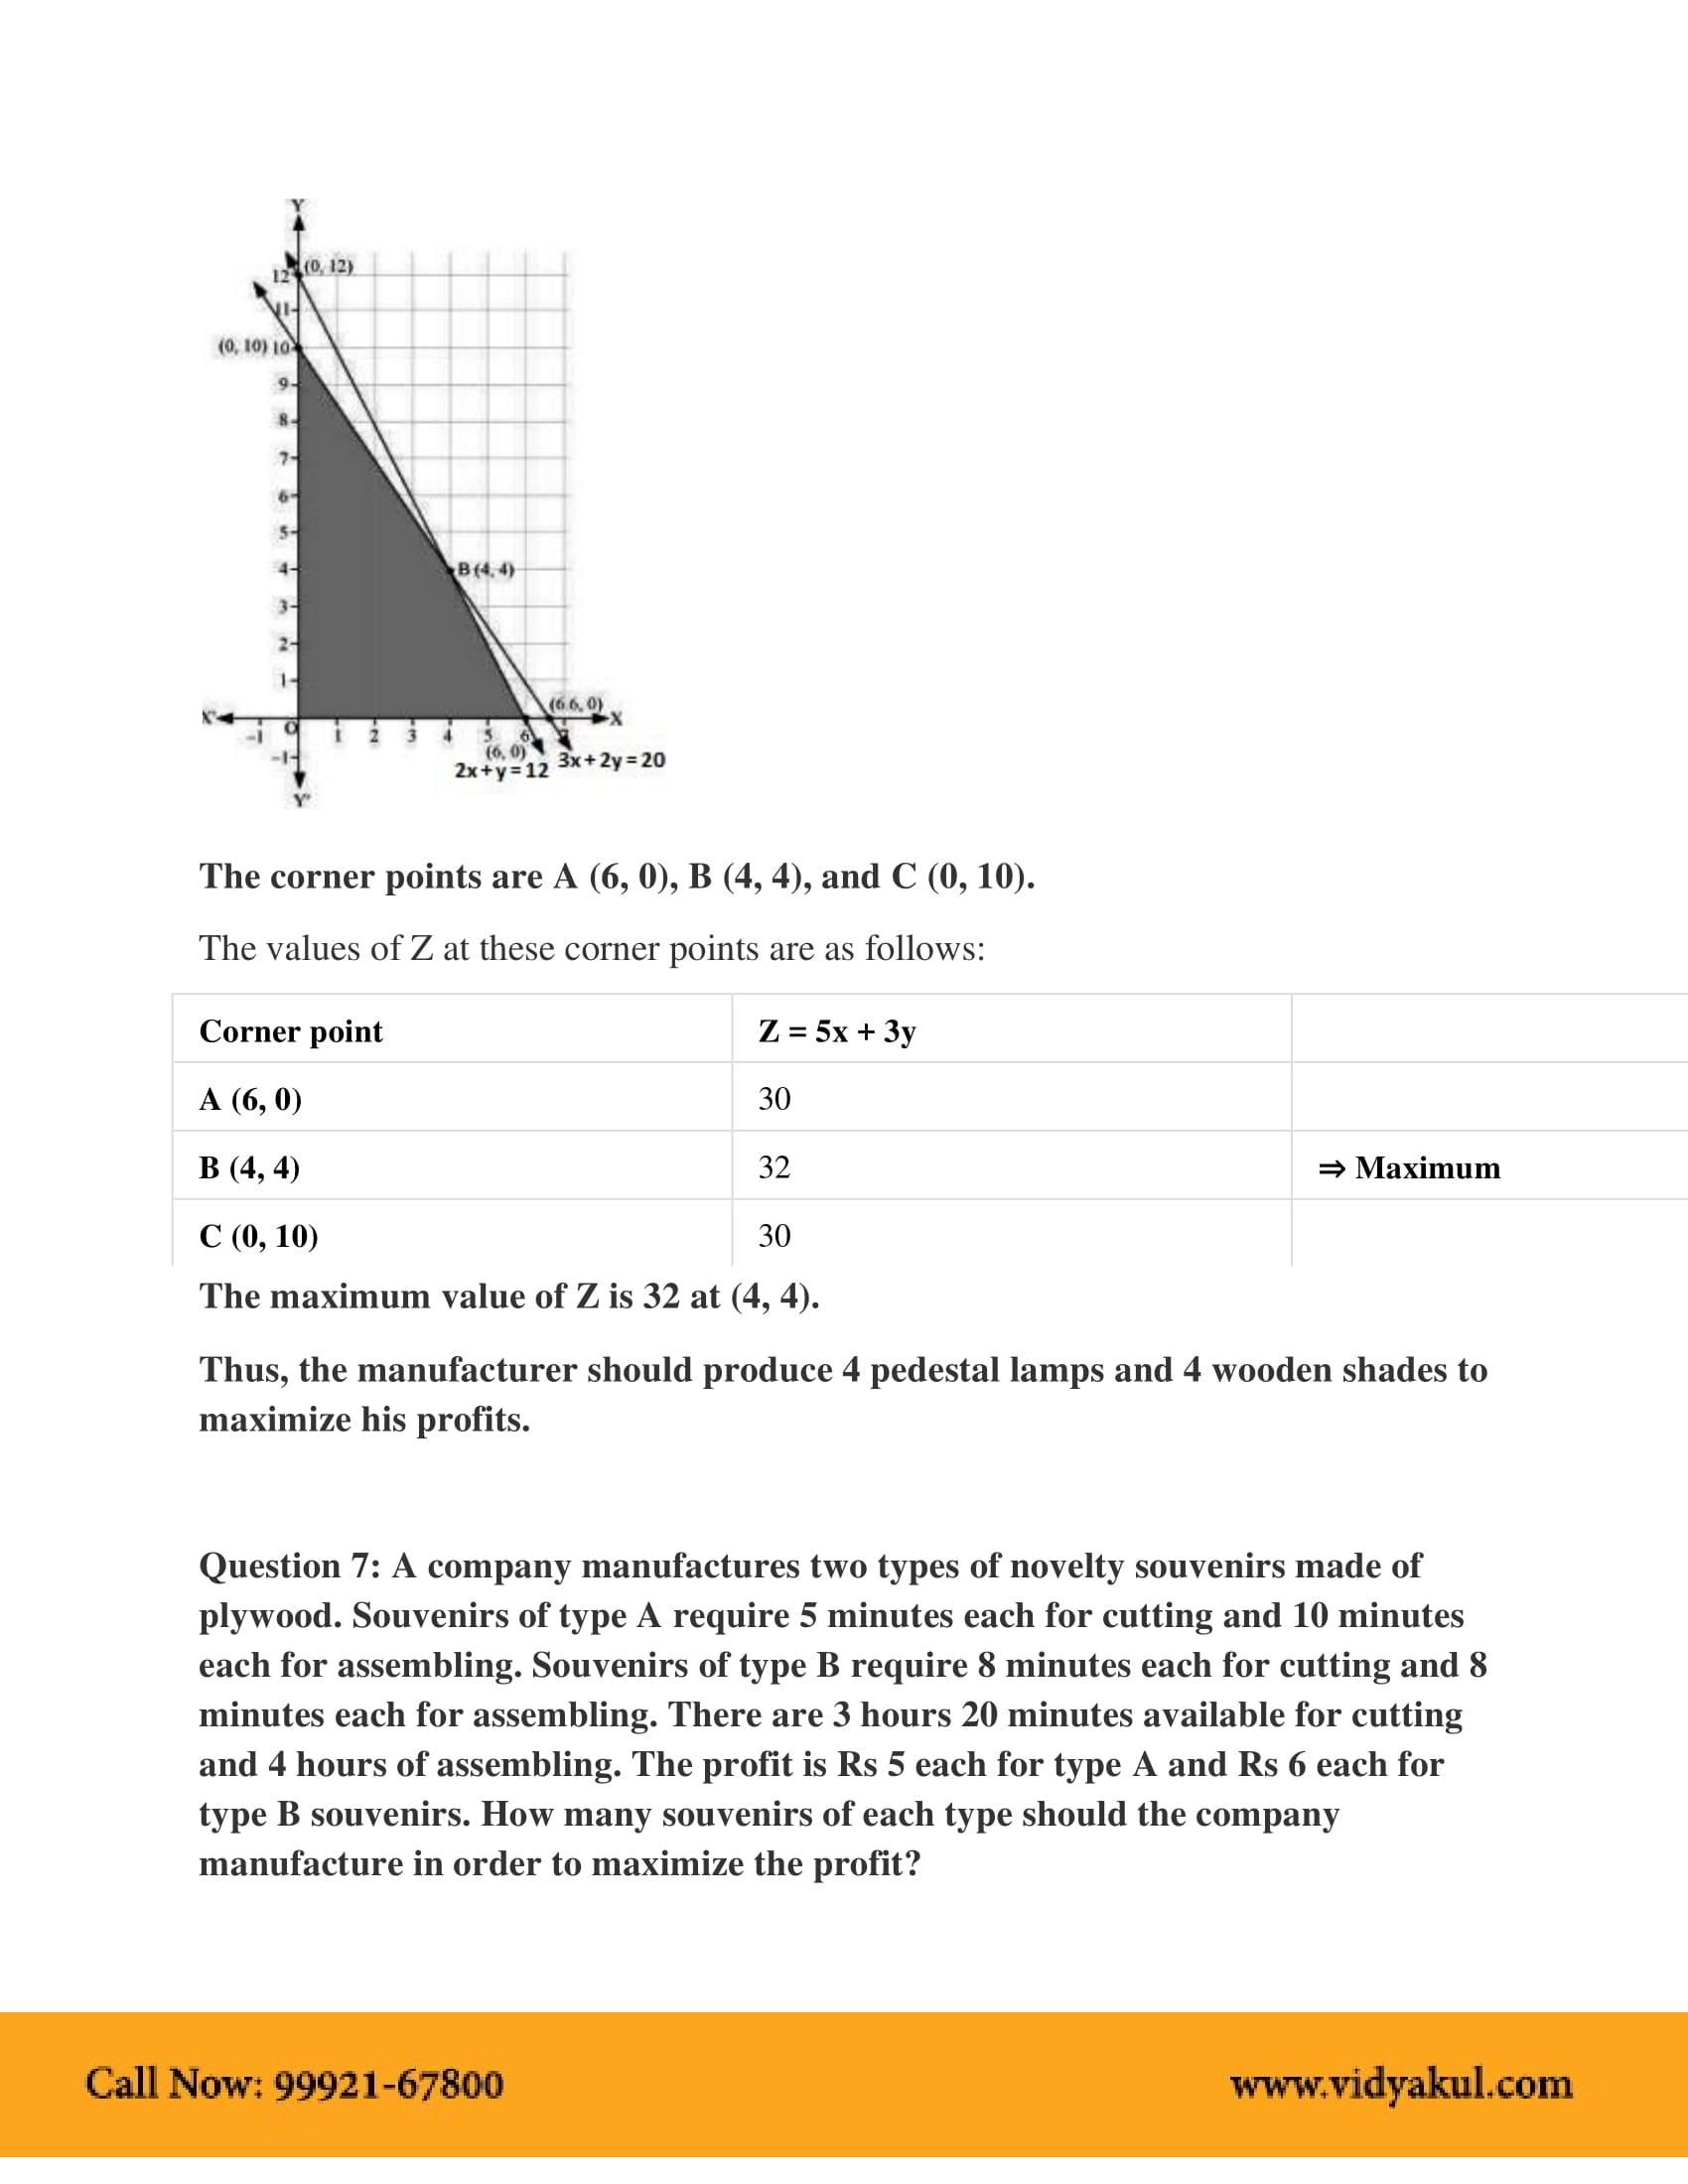 NCERT Solutions for Class 12 Maths Chapter 12 | Vidyakul